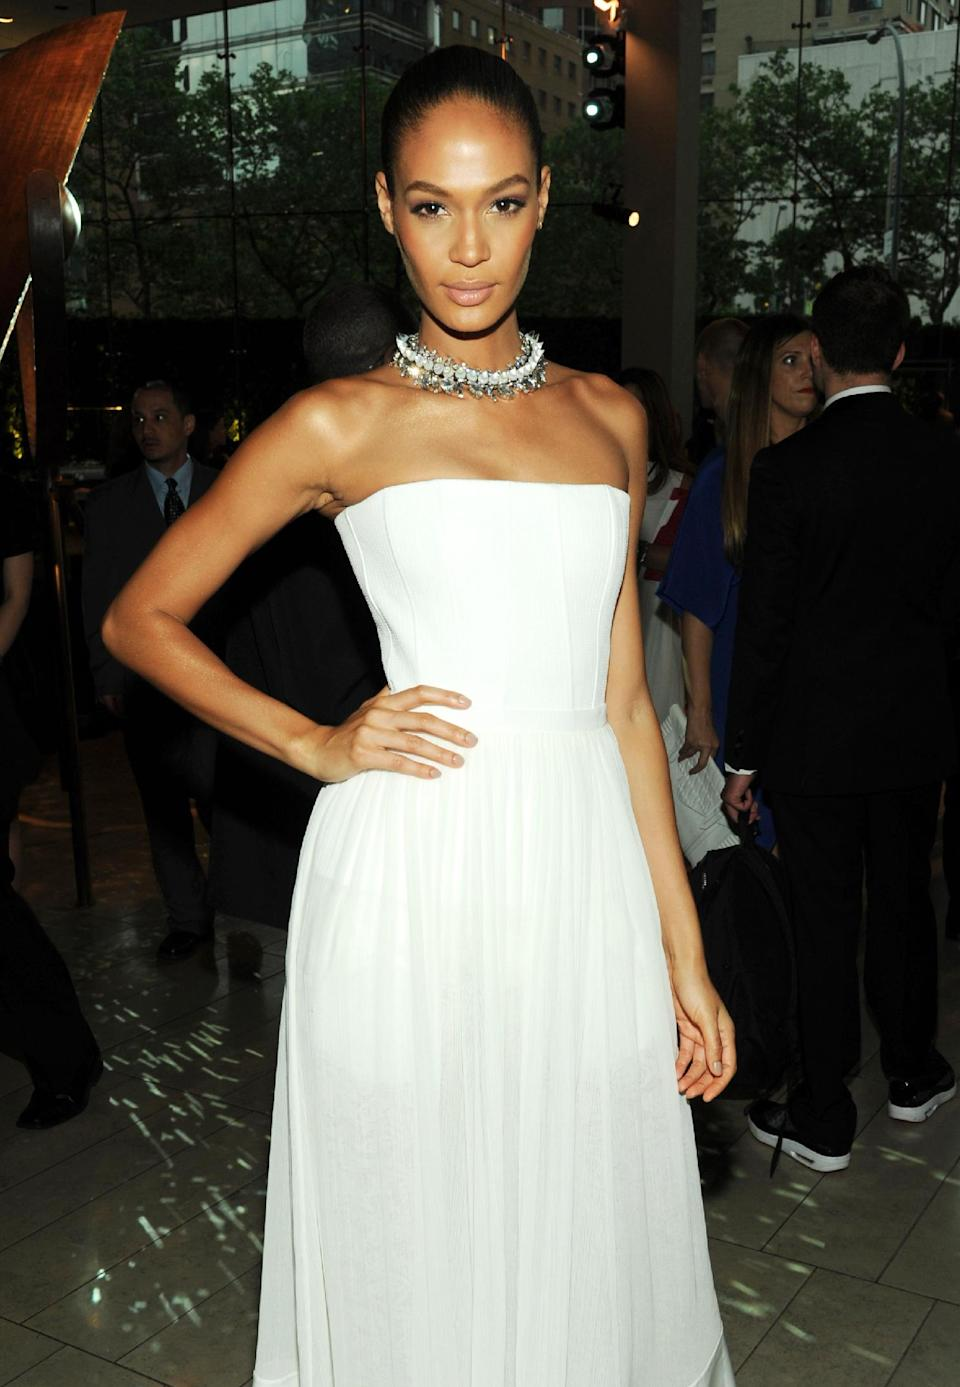 Model Joan Smalls attends the 2013 CFDA Fashion Awards at Alice Tully Hall on Monday, June 3, 2013 in New York. (Photo by Evan Agostini/Invision/AP)